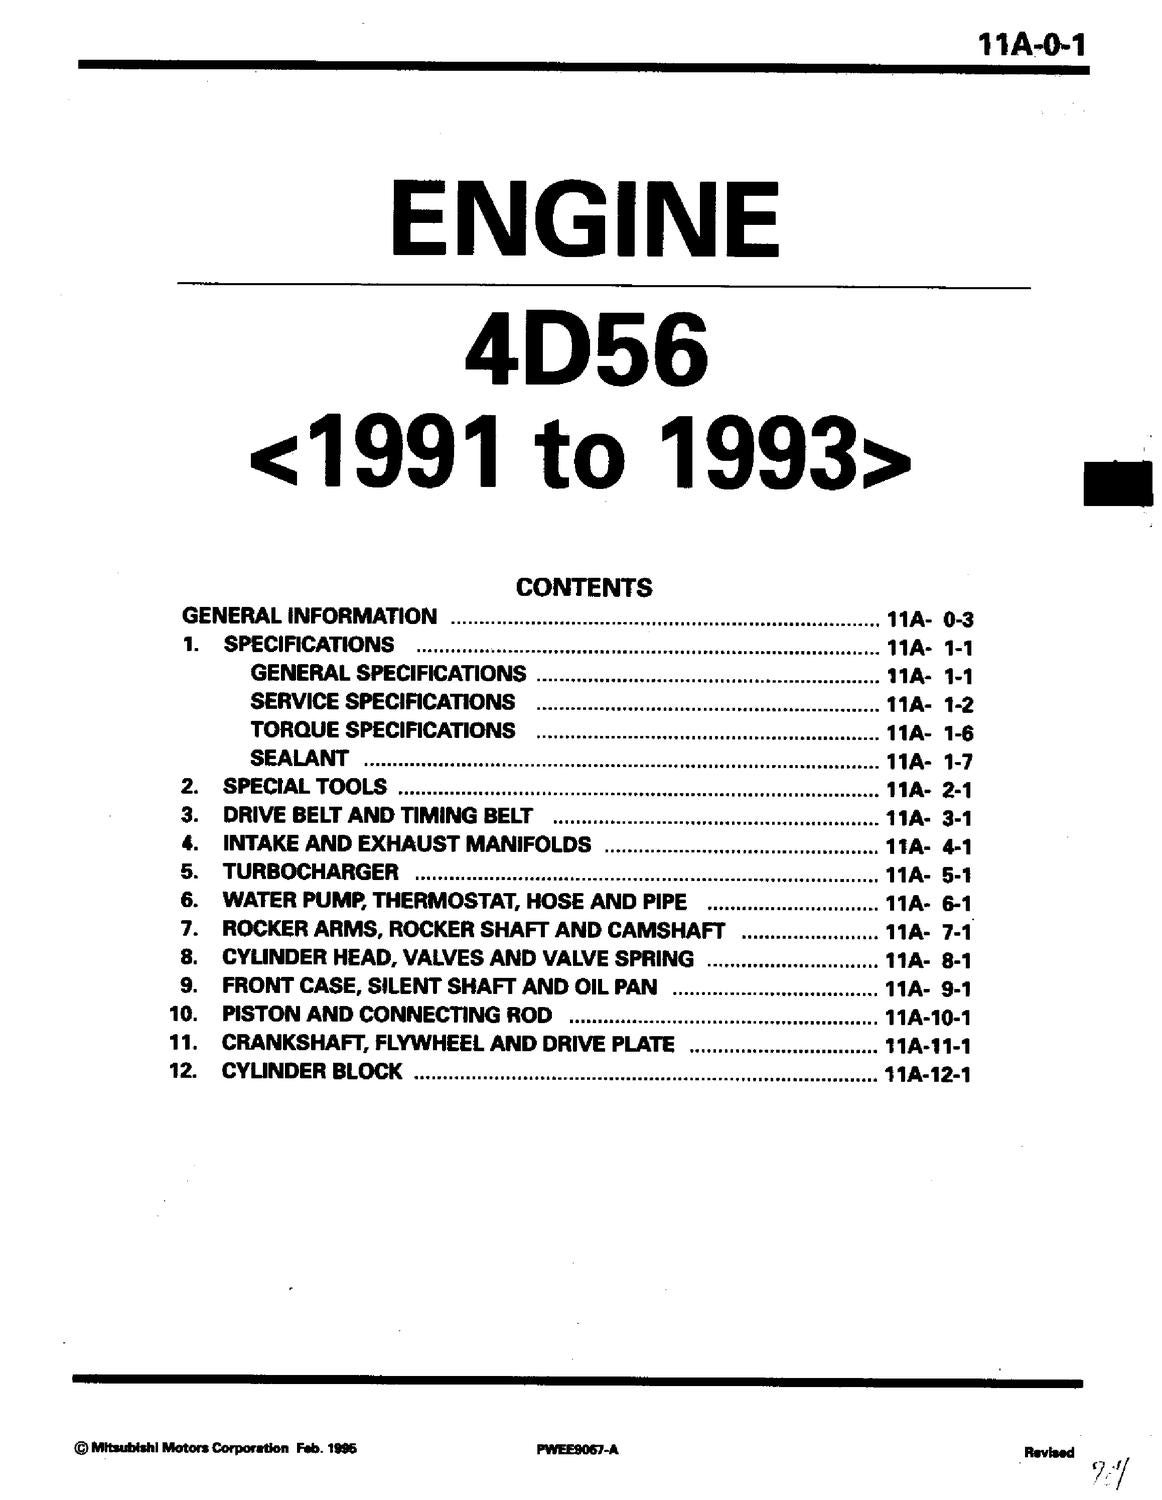 4d56 engine schematic diagram of transmission